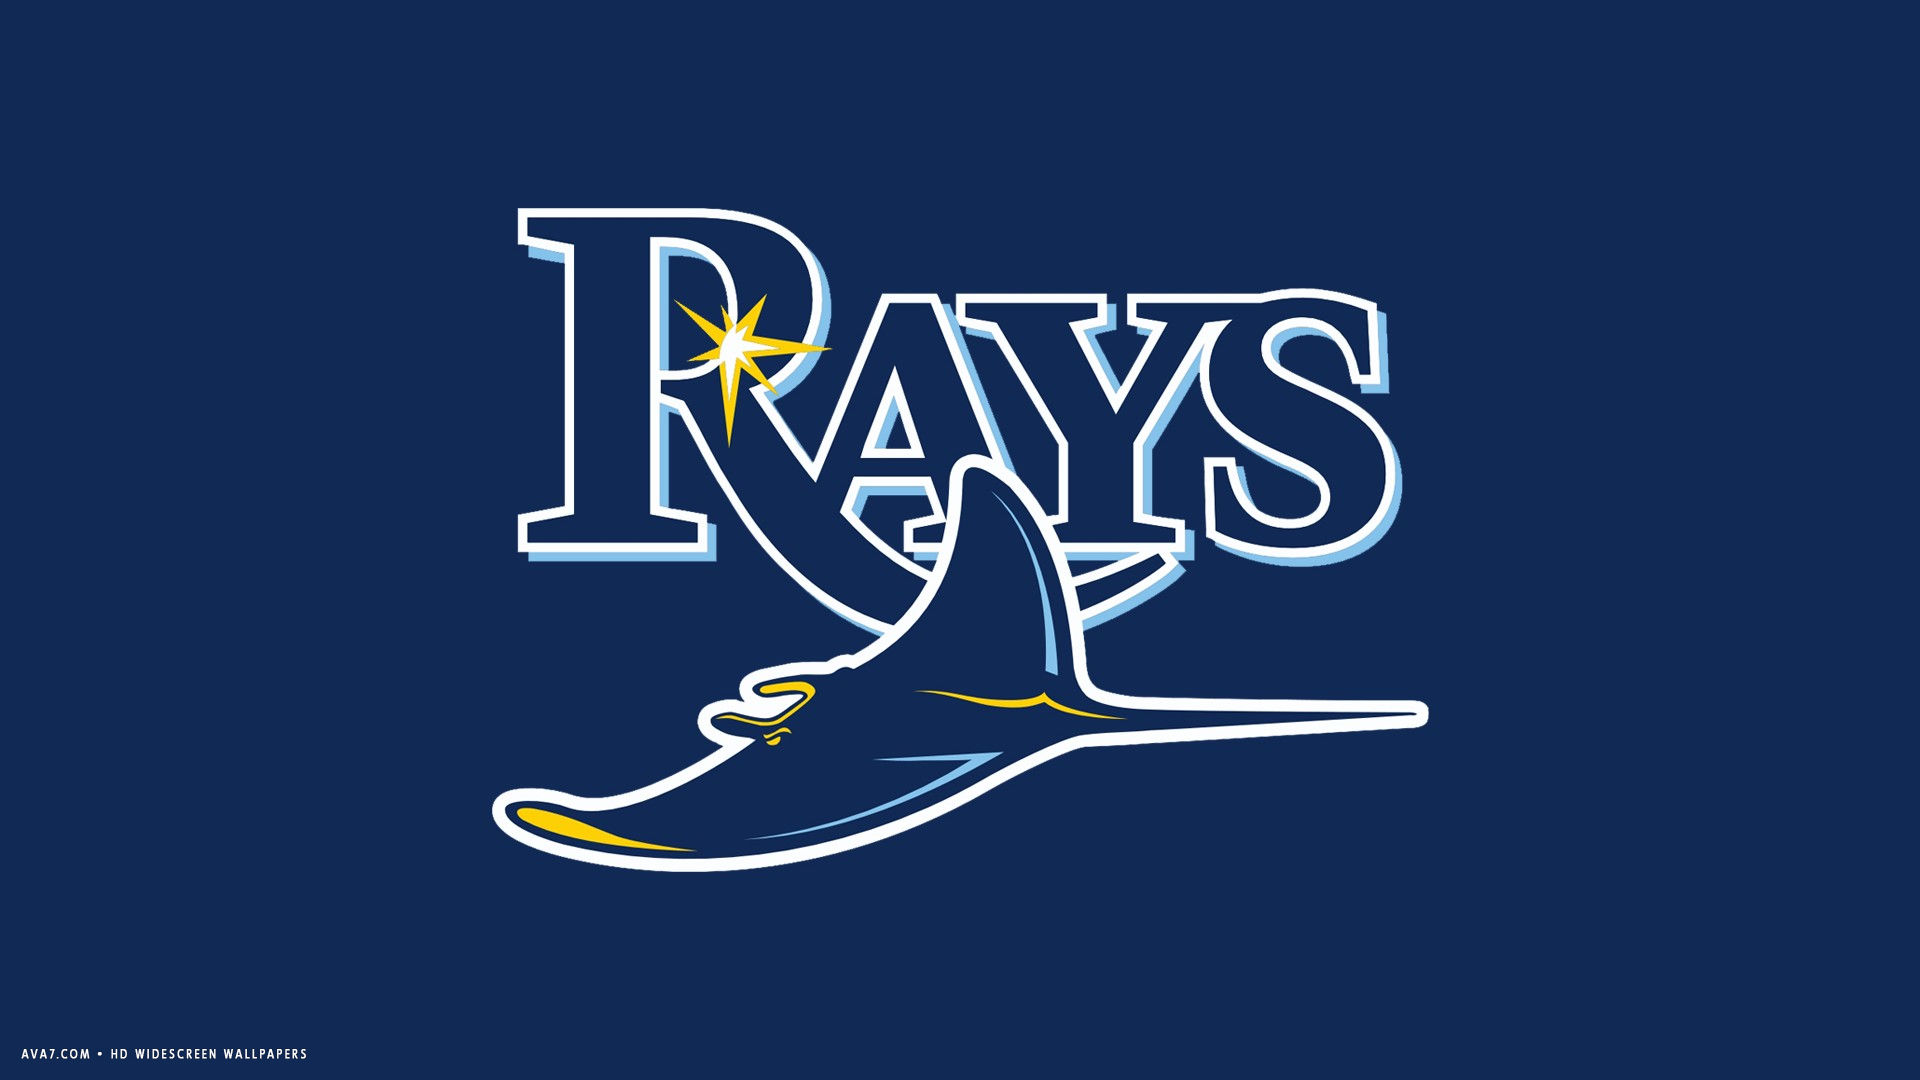 tampa bay rays mlb baseball team hd widescreen wallpaper